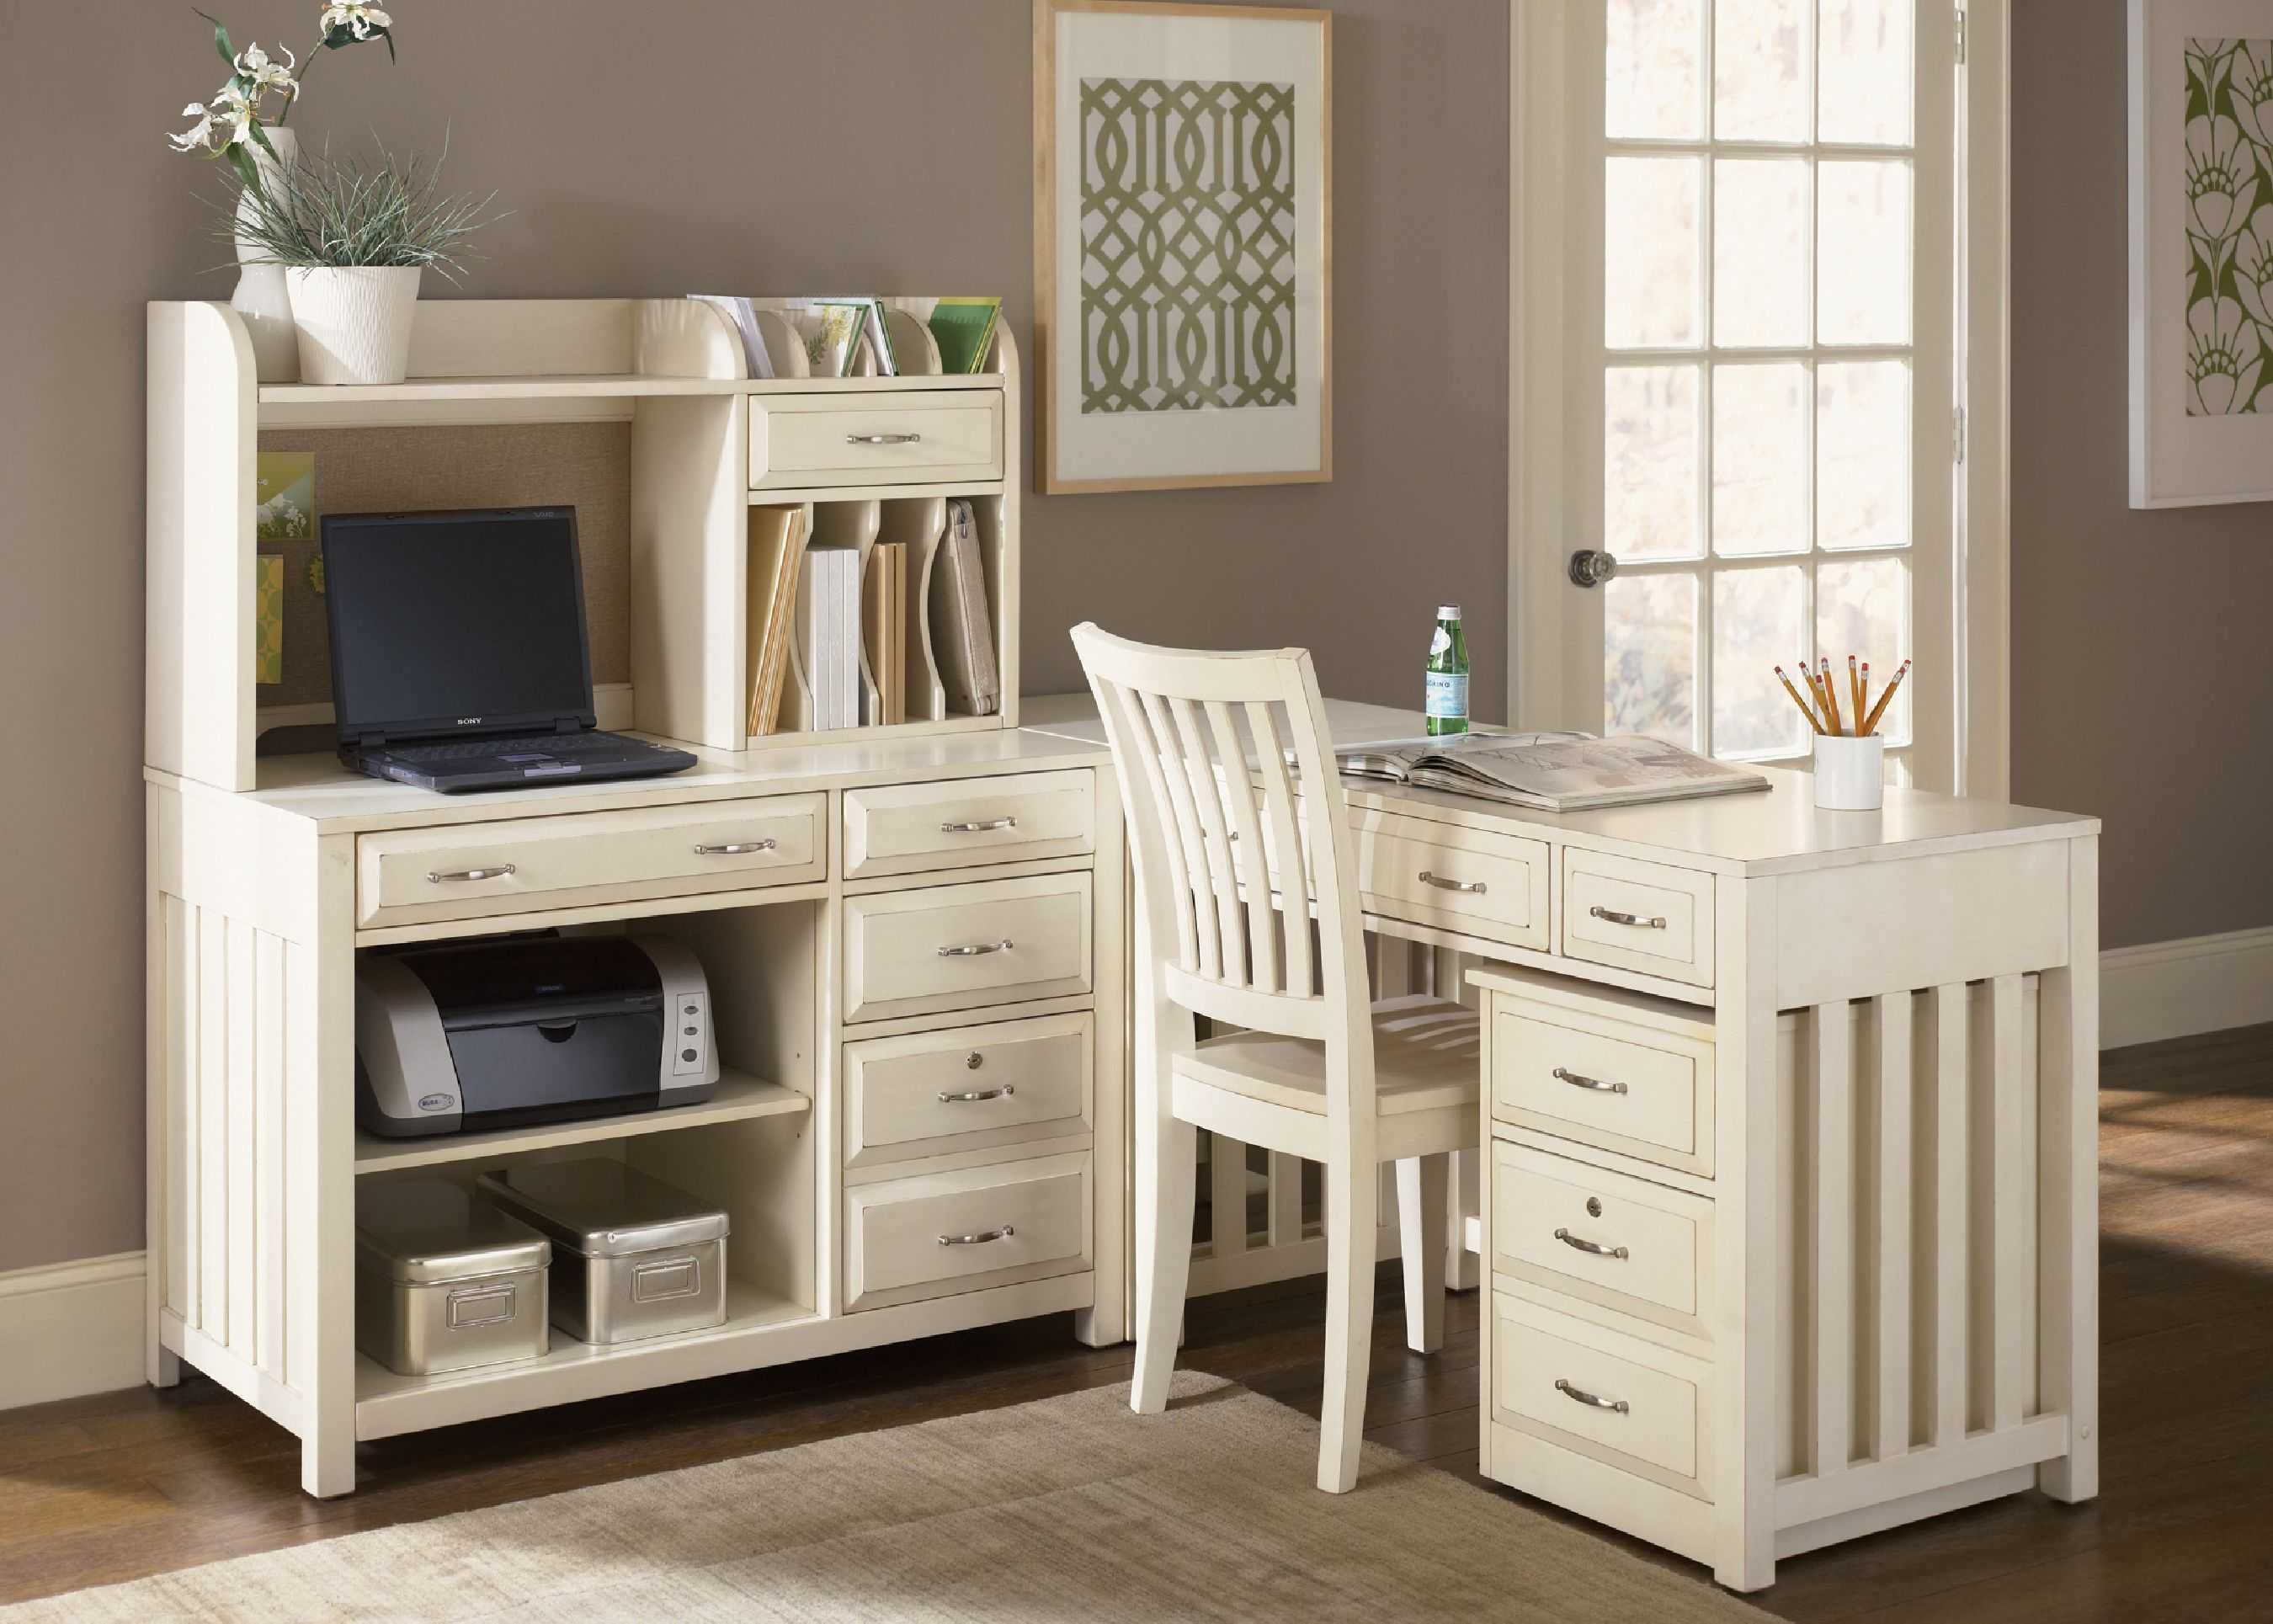 workspace decor ideas home comfortable home. decorating ideas workspace with a small corner table and drawers office designs for spaces decor home comfortable e